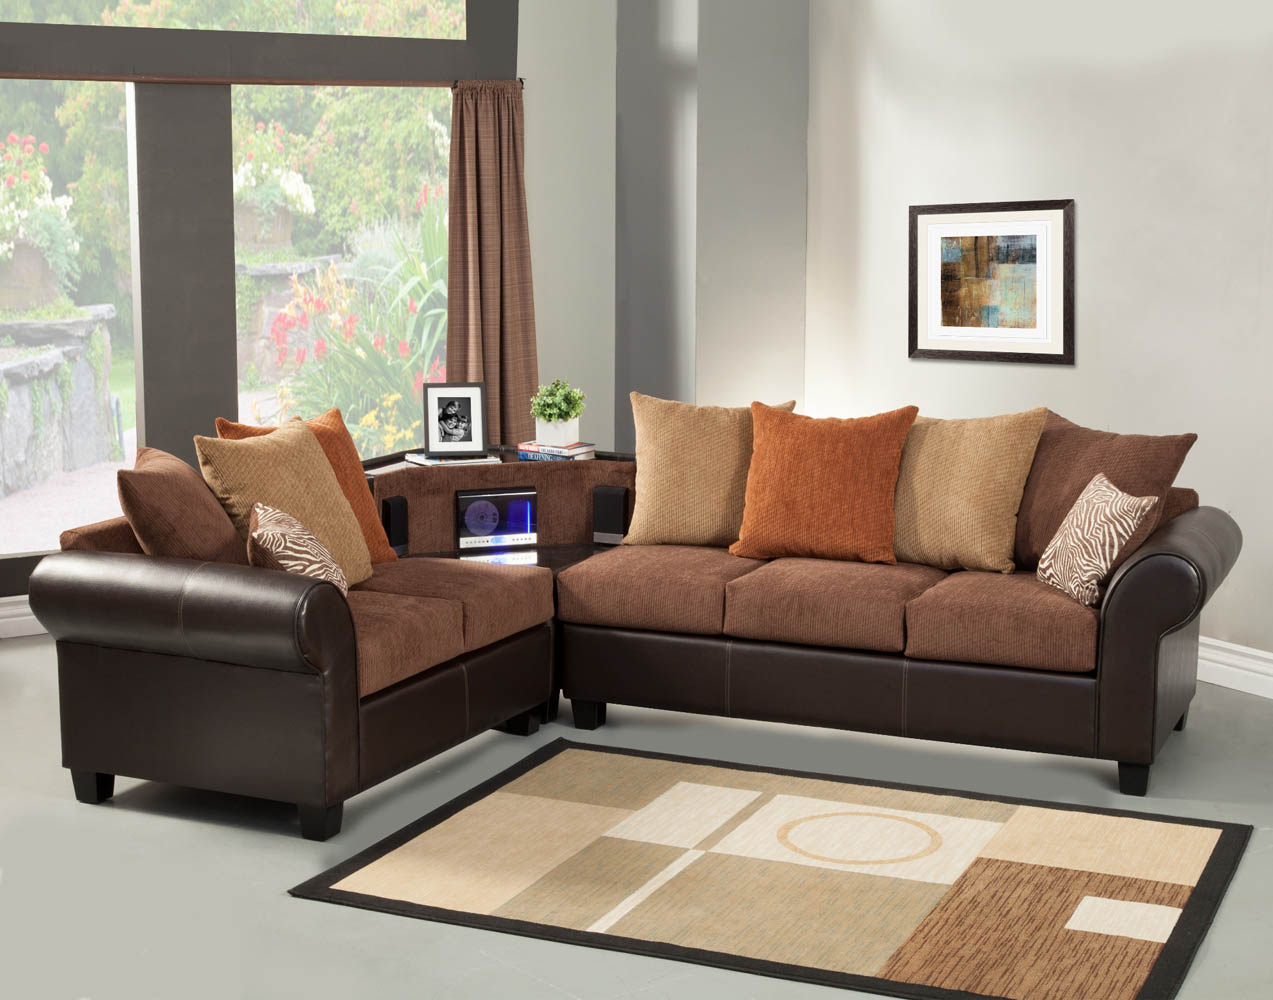 cheap sleeper furniture couches ashley reclining for leather sectional chaise sale sofas with u ideas tan loveseats sofa shaped couch